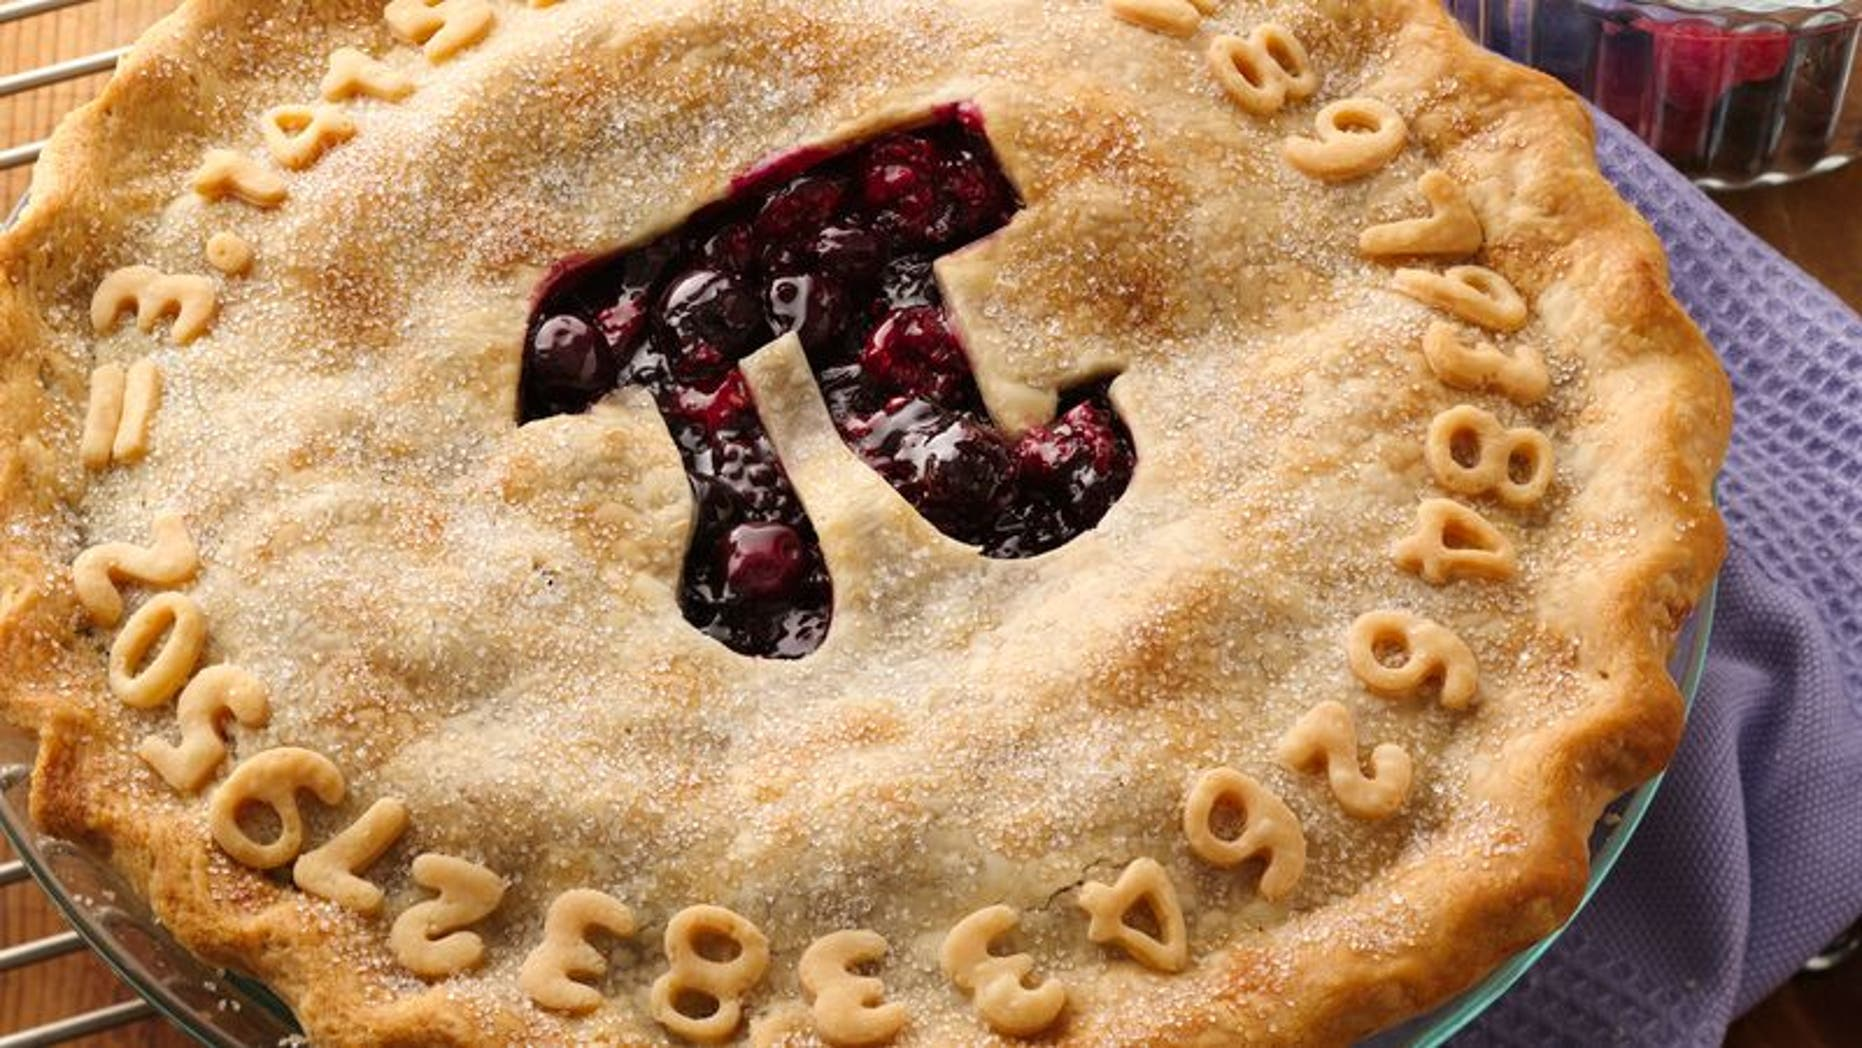 """Pillsbury even created its own """"Pi Day Pie"""", posting the recipe on its website, to mark the occasion."""